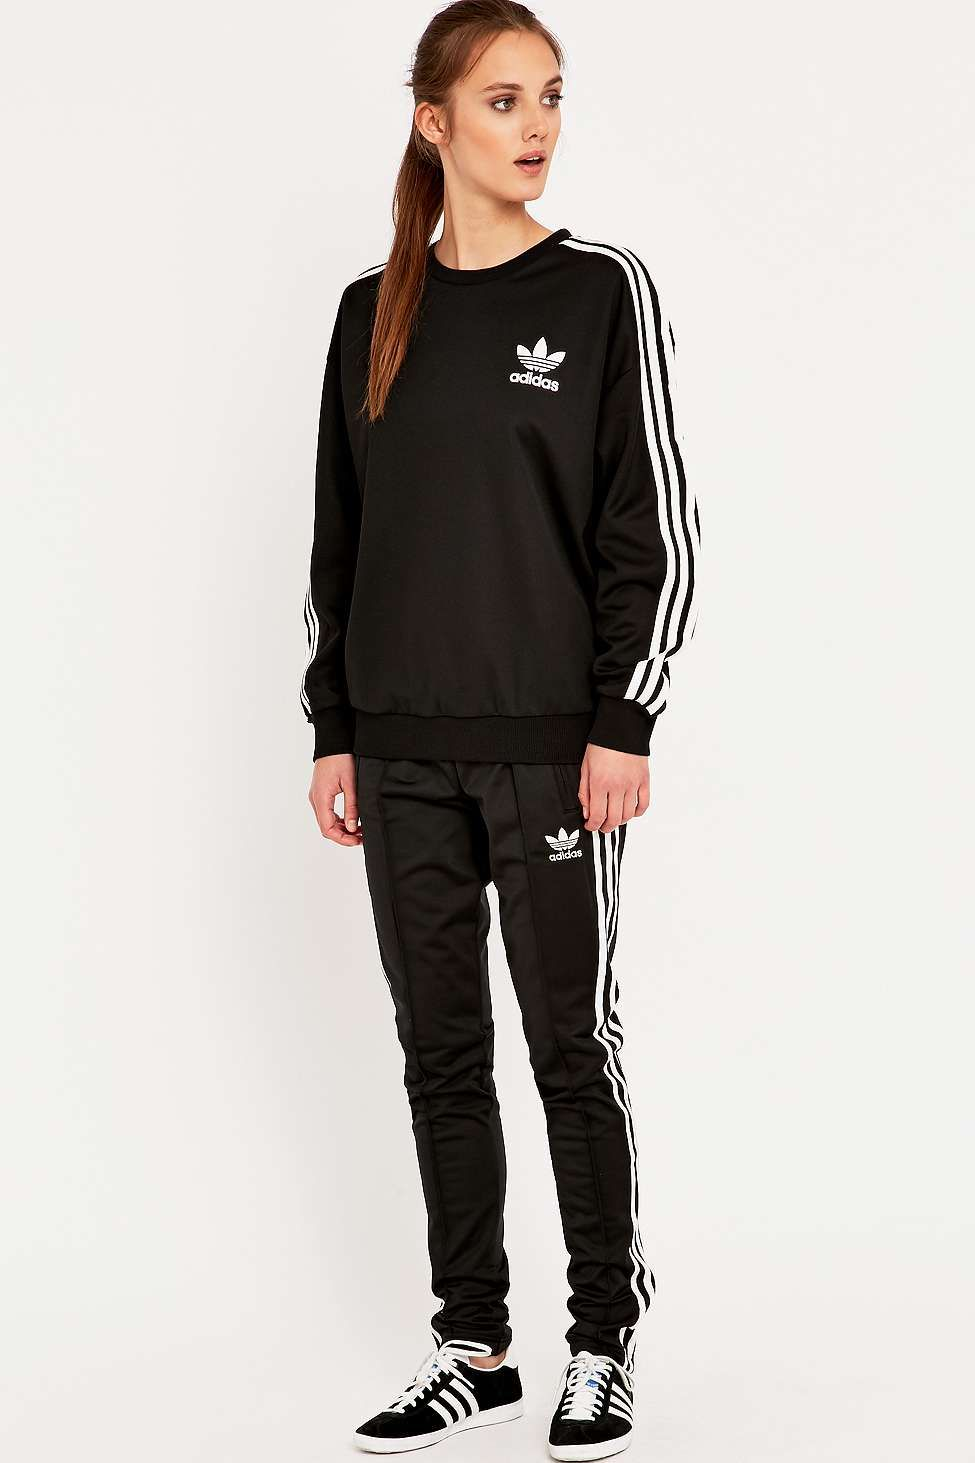 Adidas Originals Slim Supergirl corredores workout looks